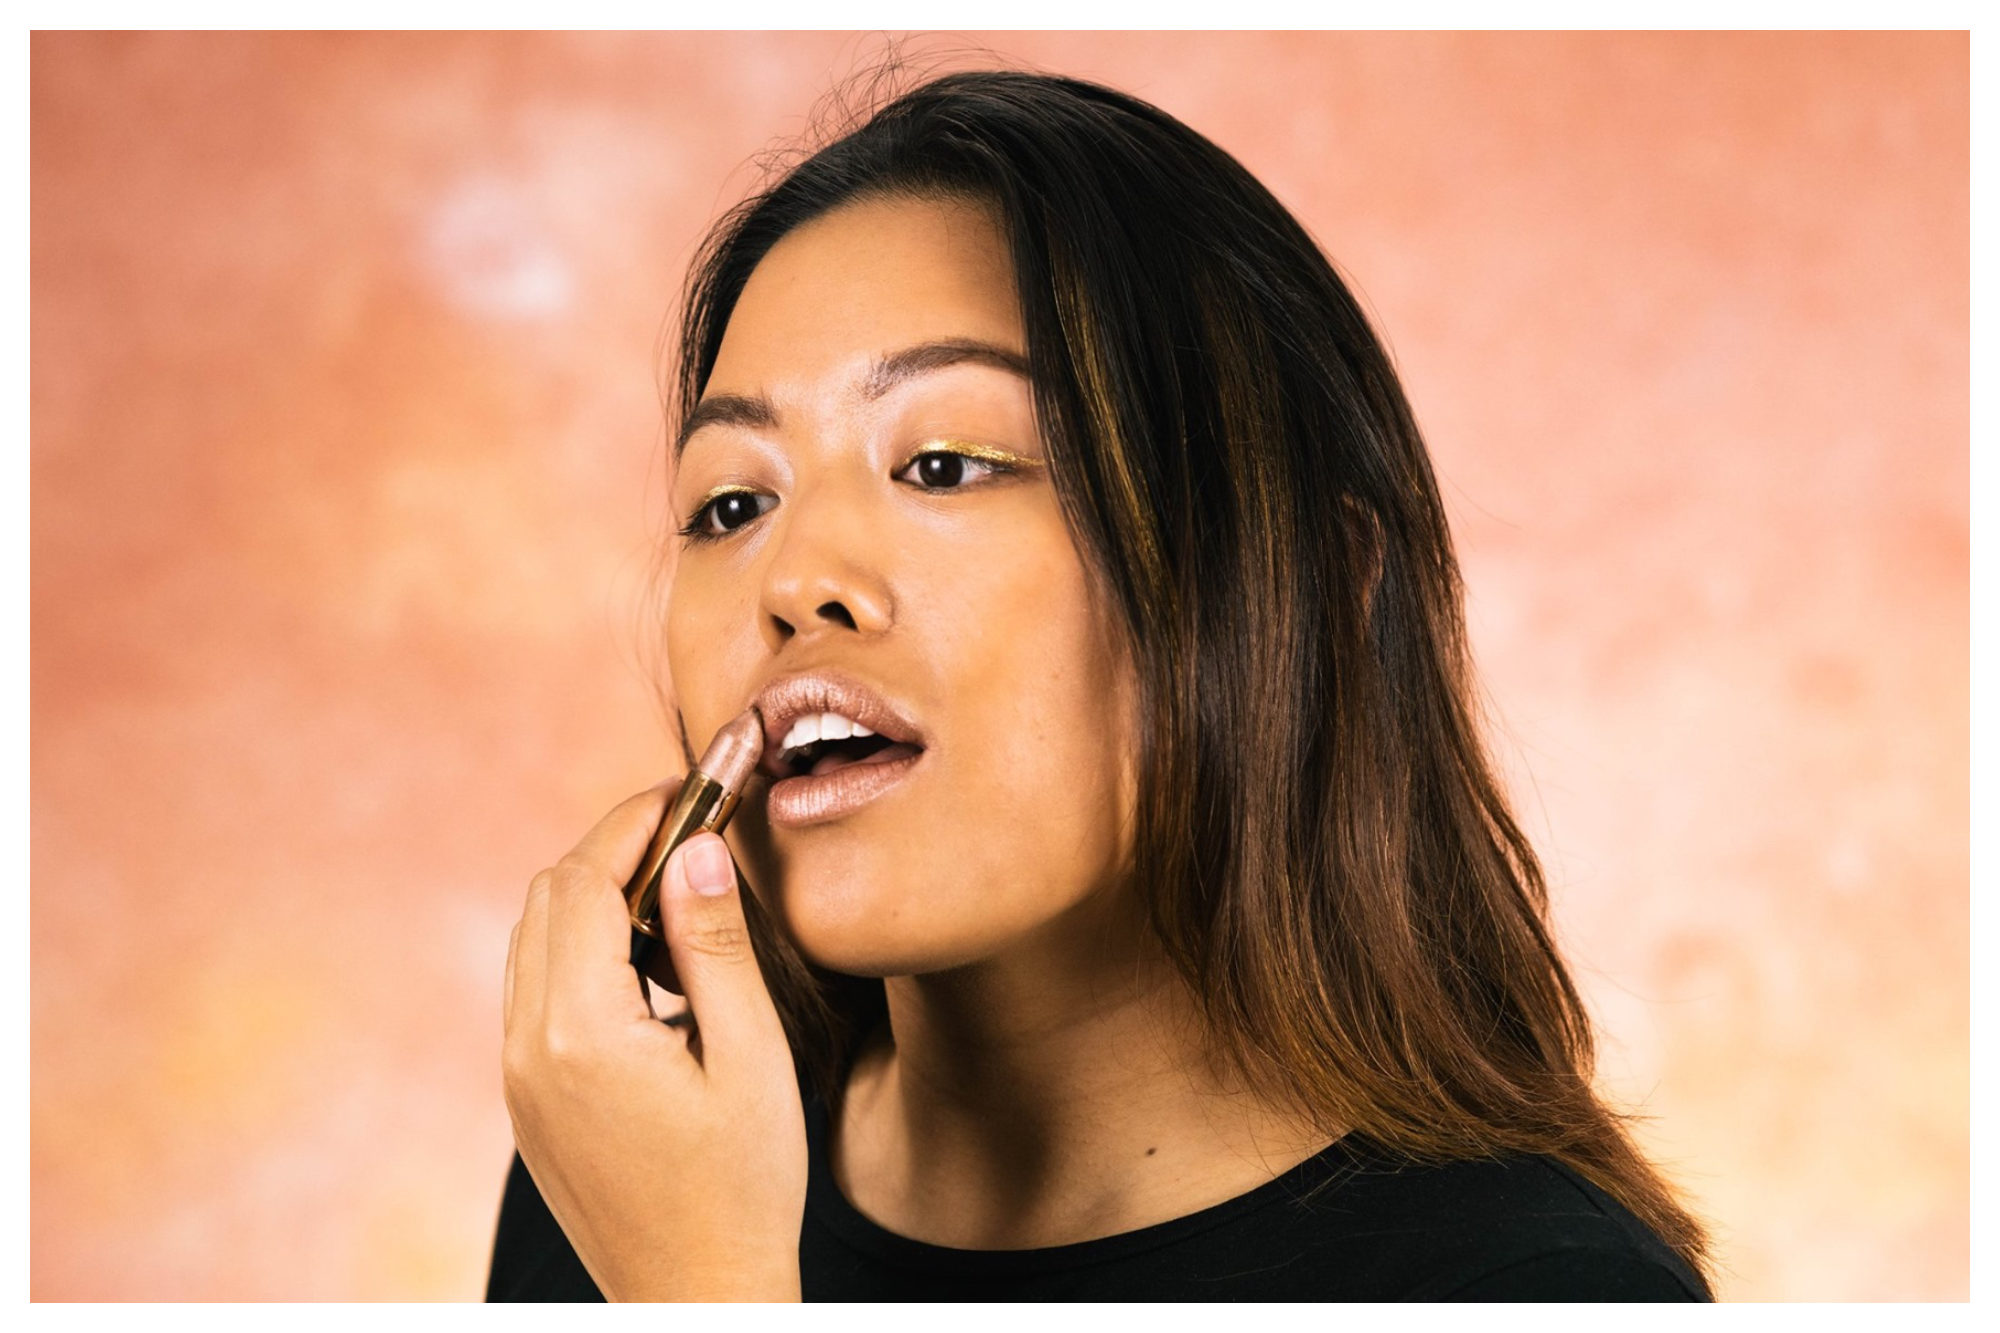 An Asia woman applying a shimmery pink lipstick from organic store Naturalia.